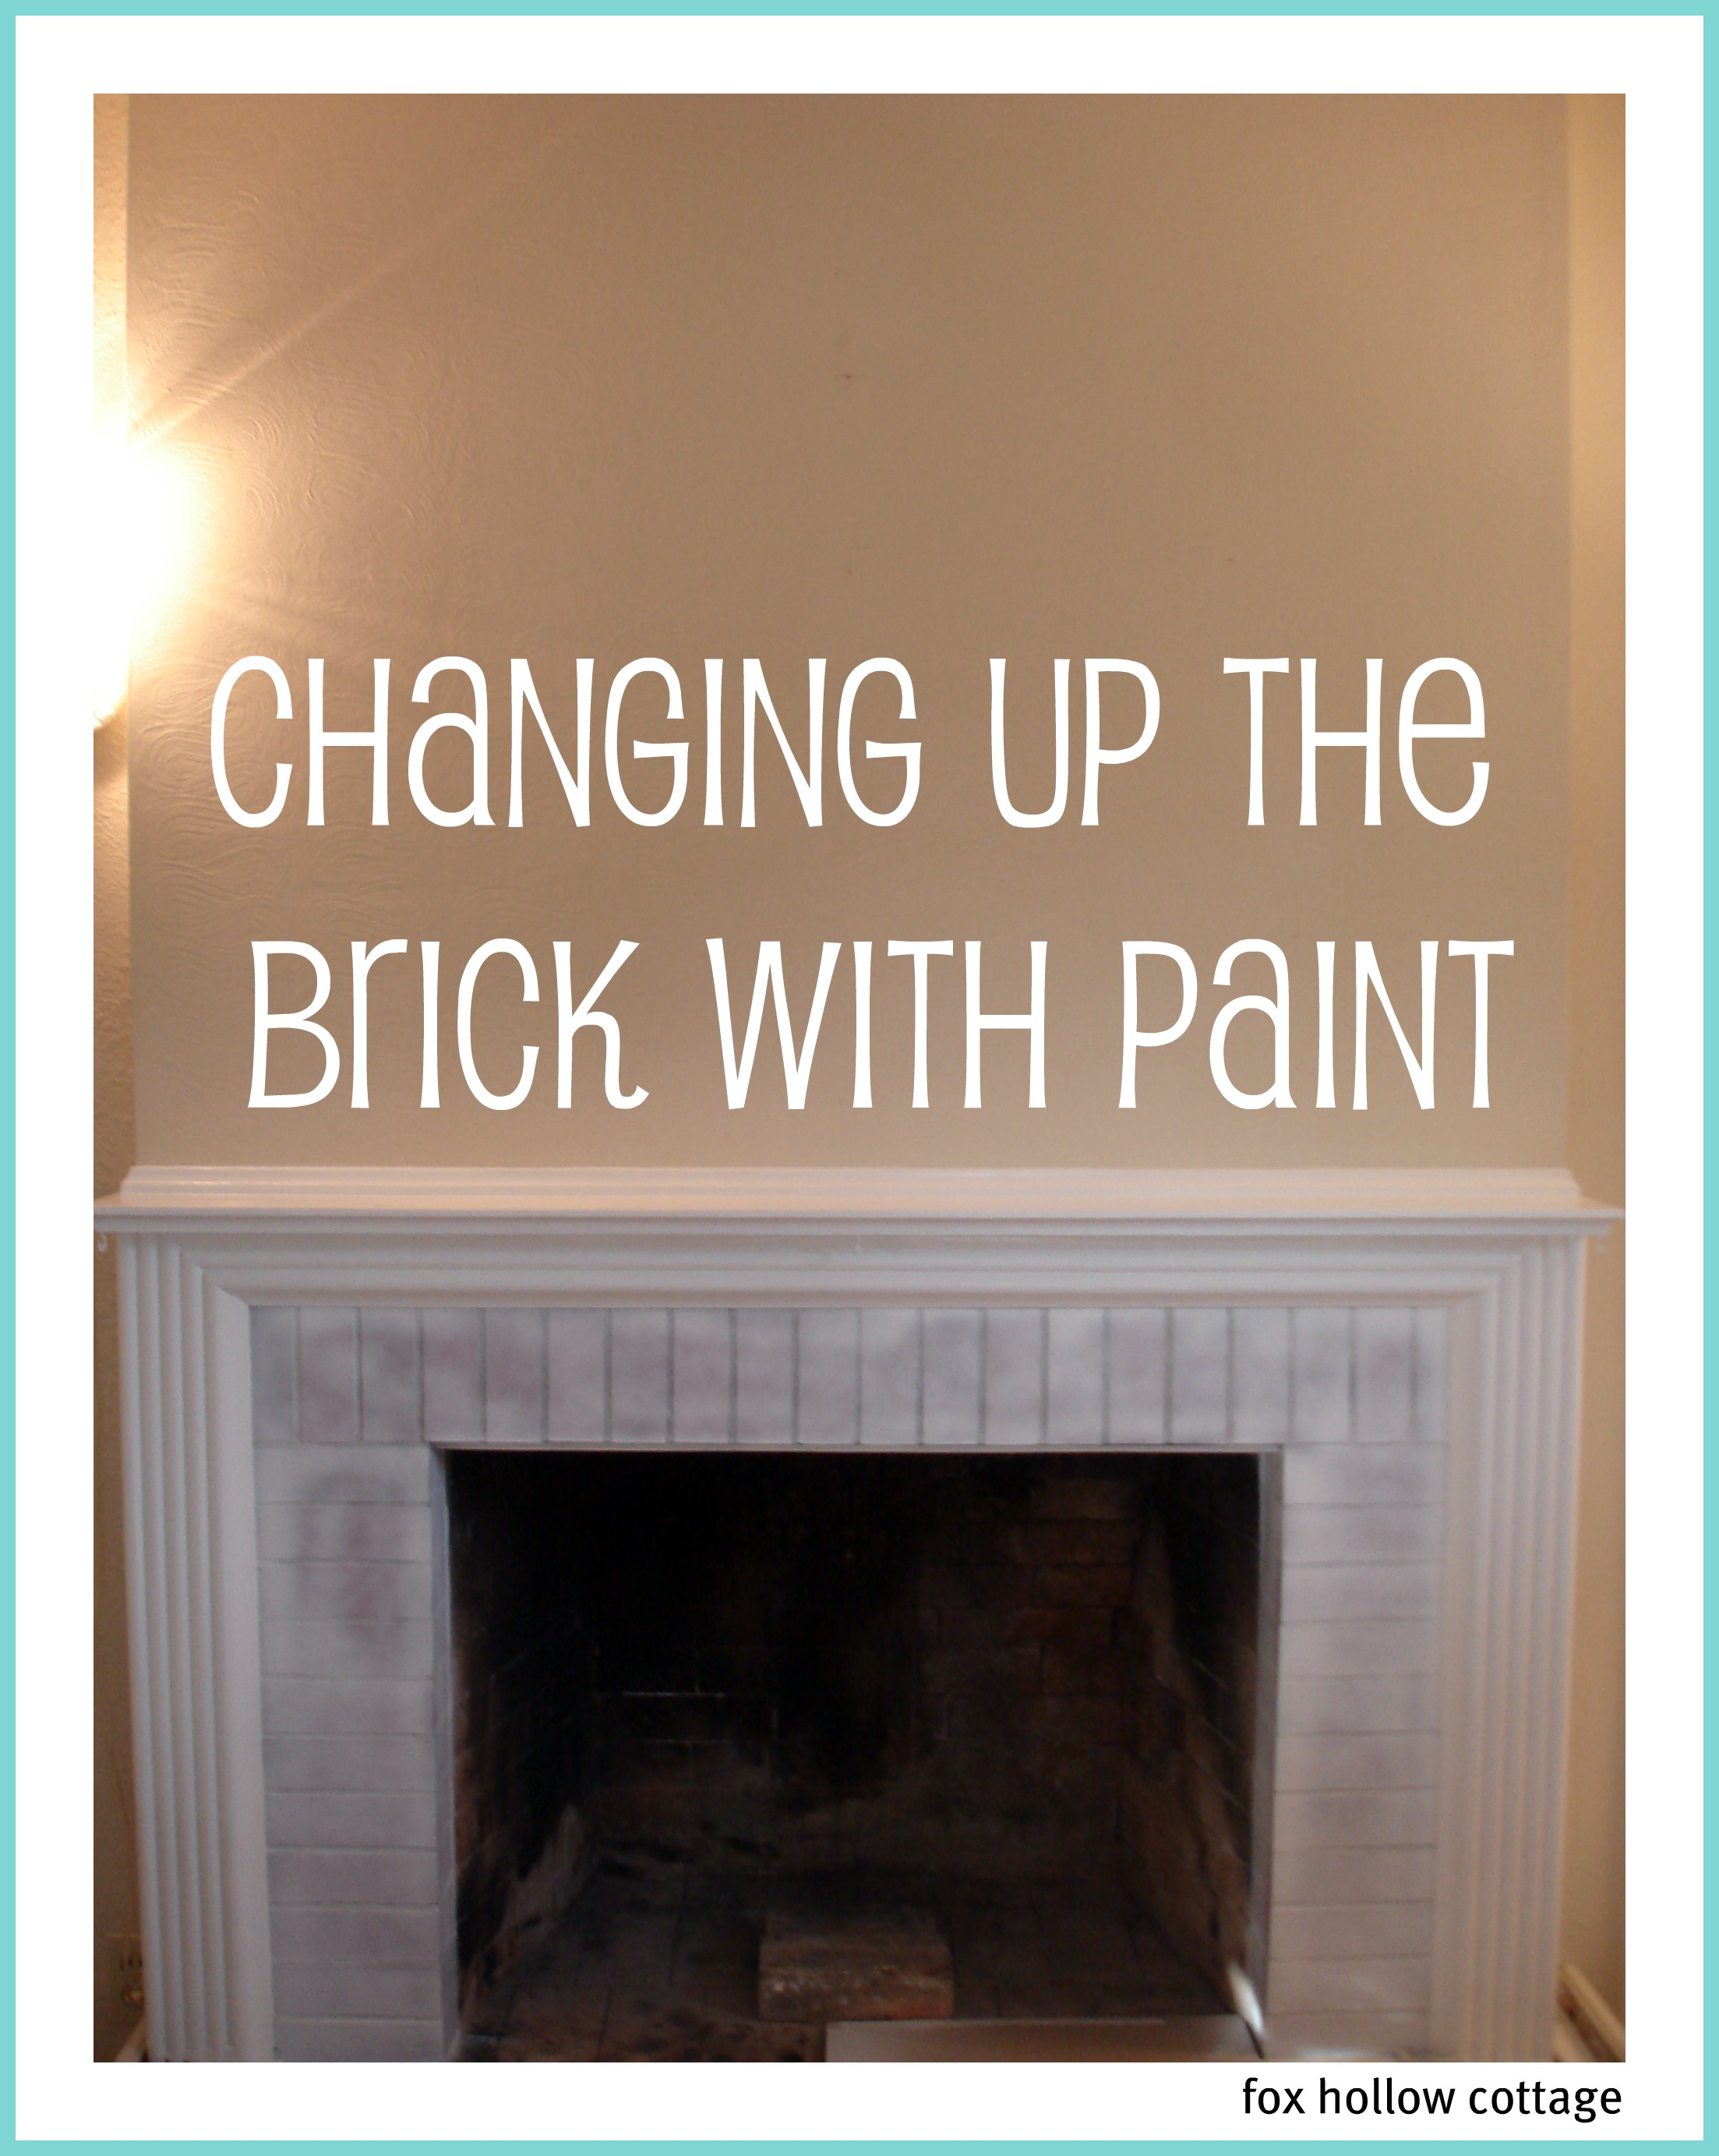 diy fireplace makeover - spray painting glossy bricks